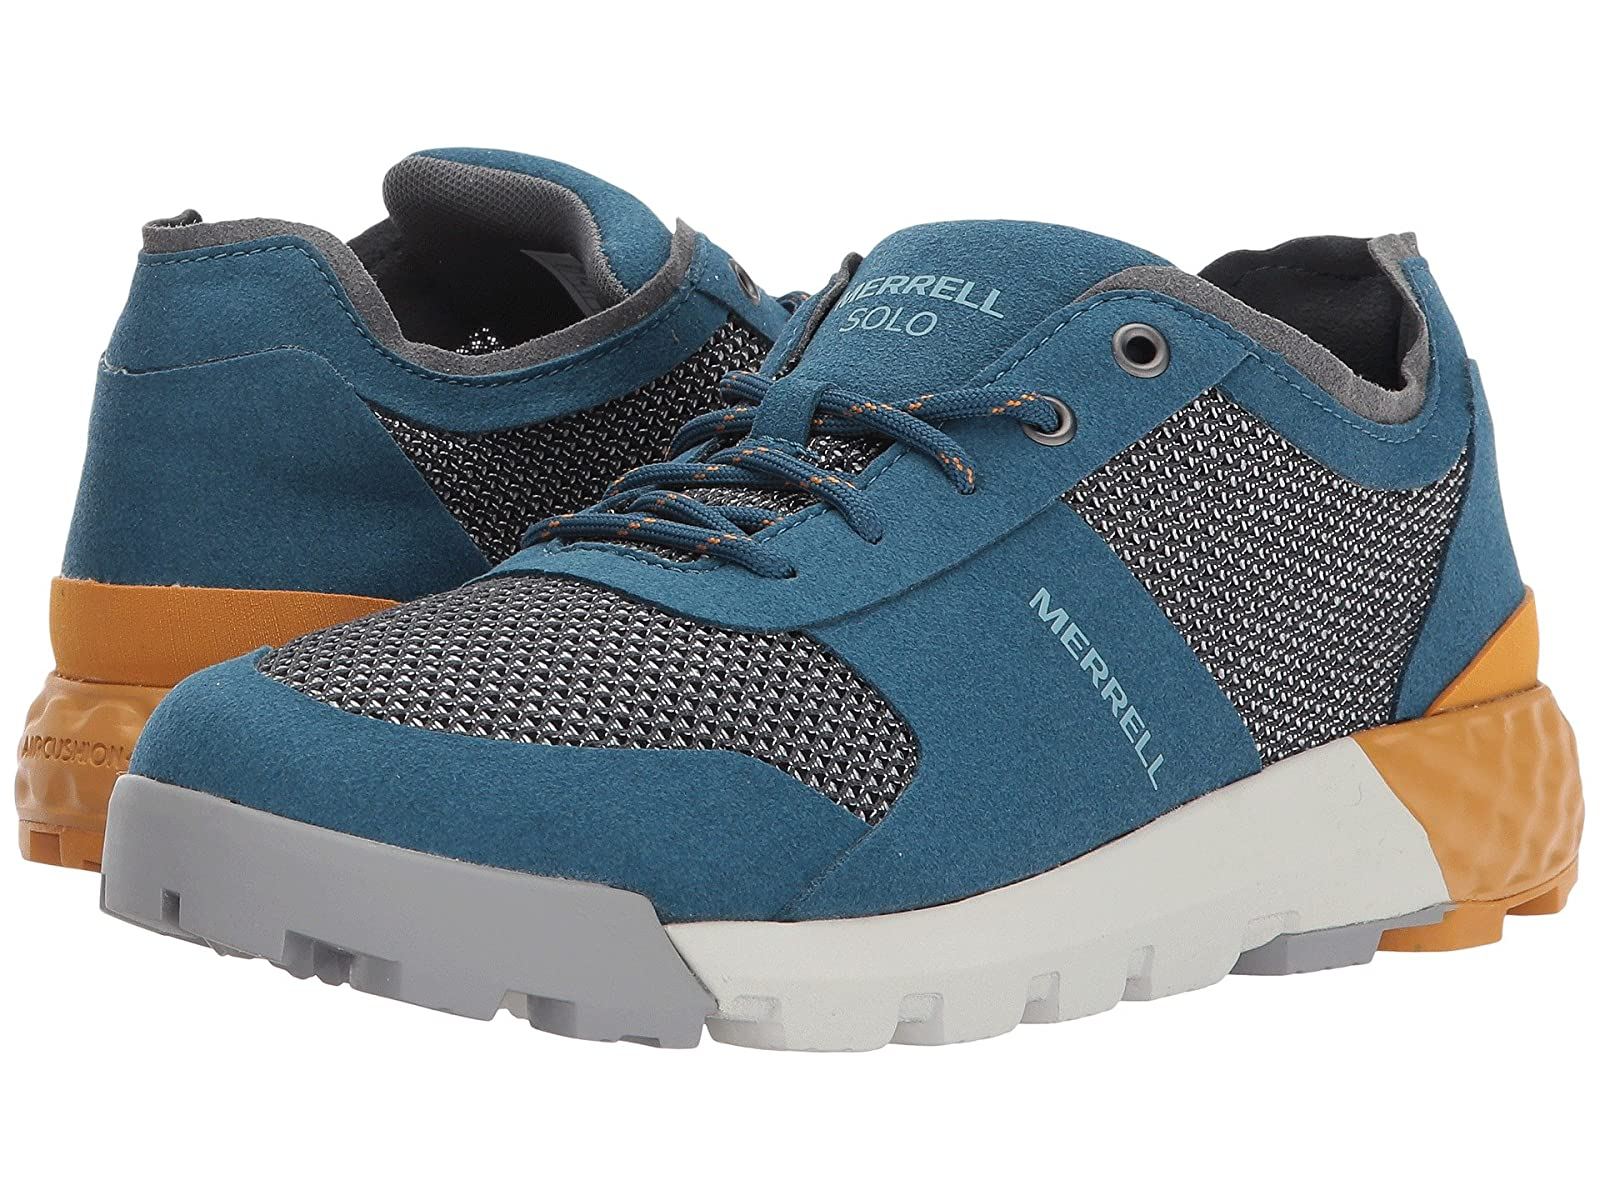 Merrell Solo AC+Cheap and distinctive eye-catching shoes